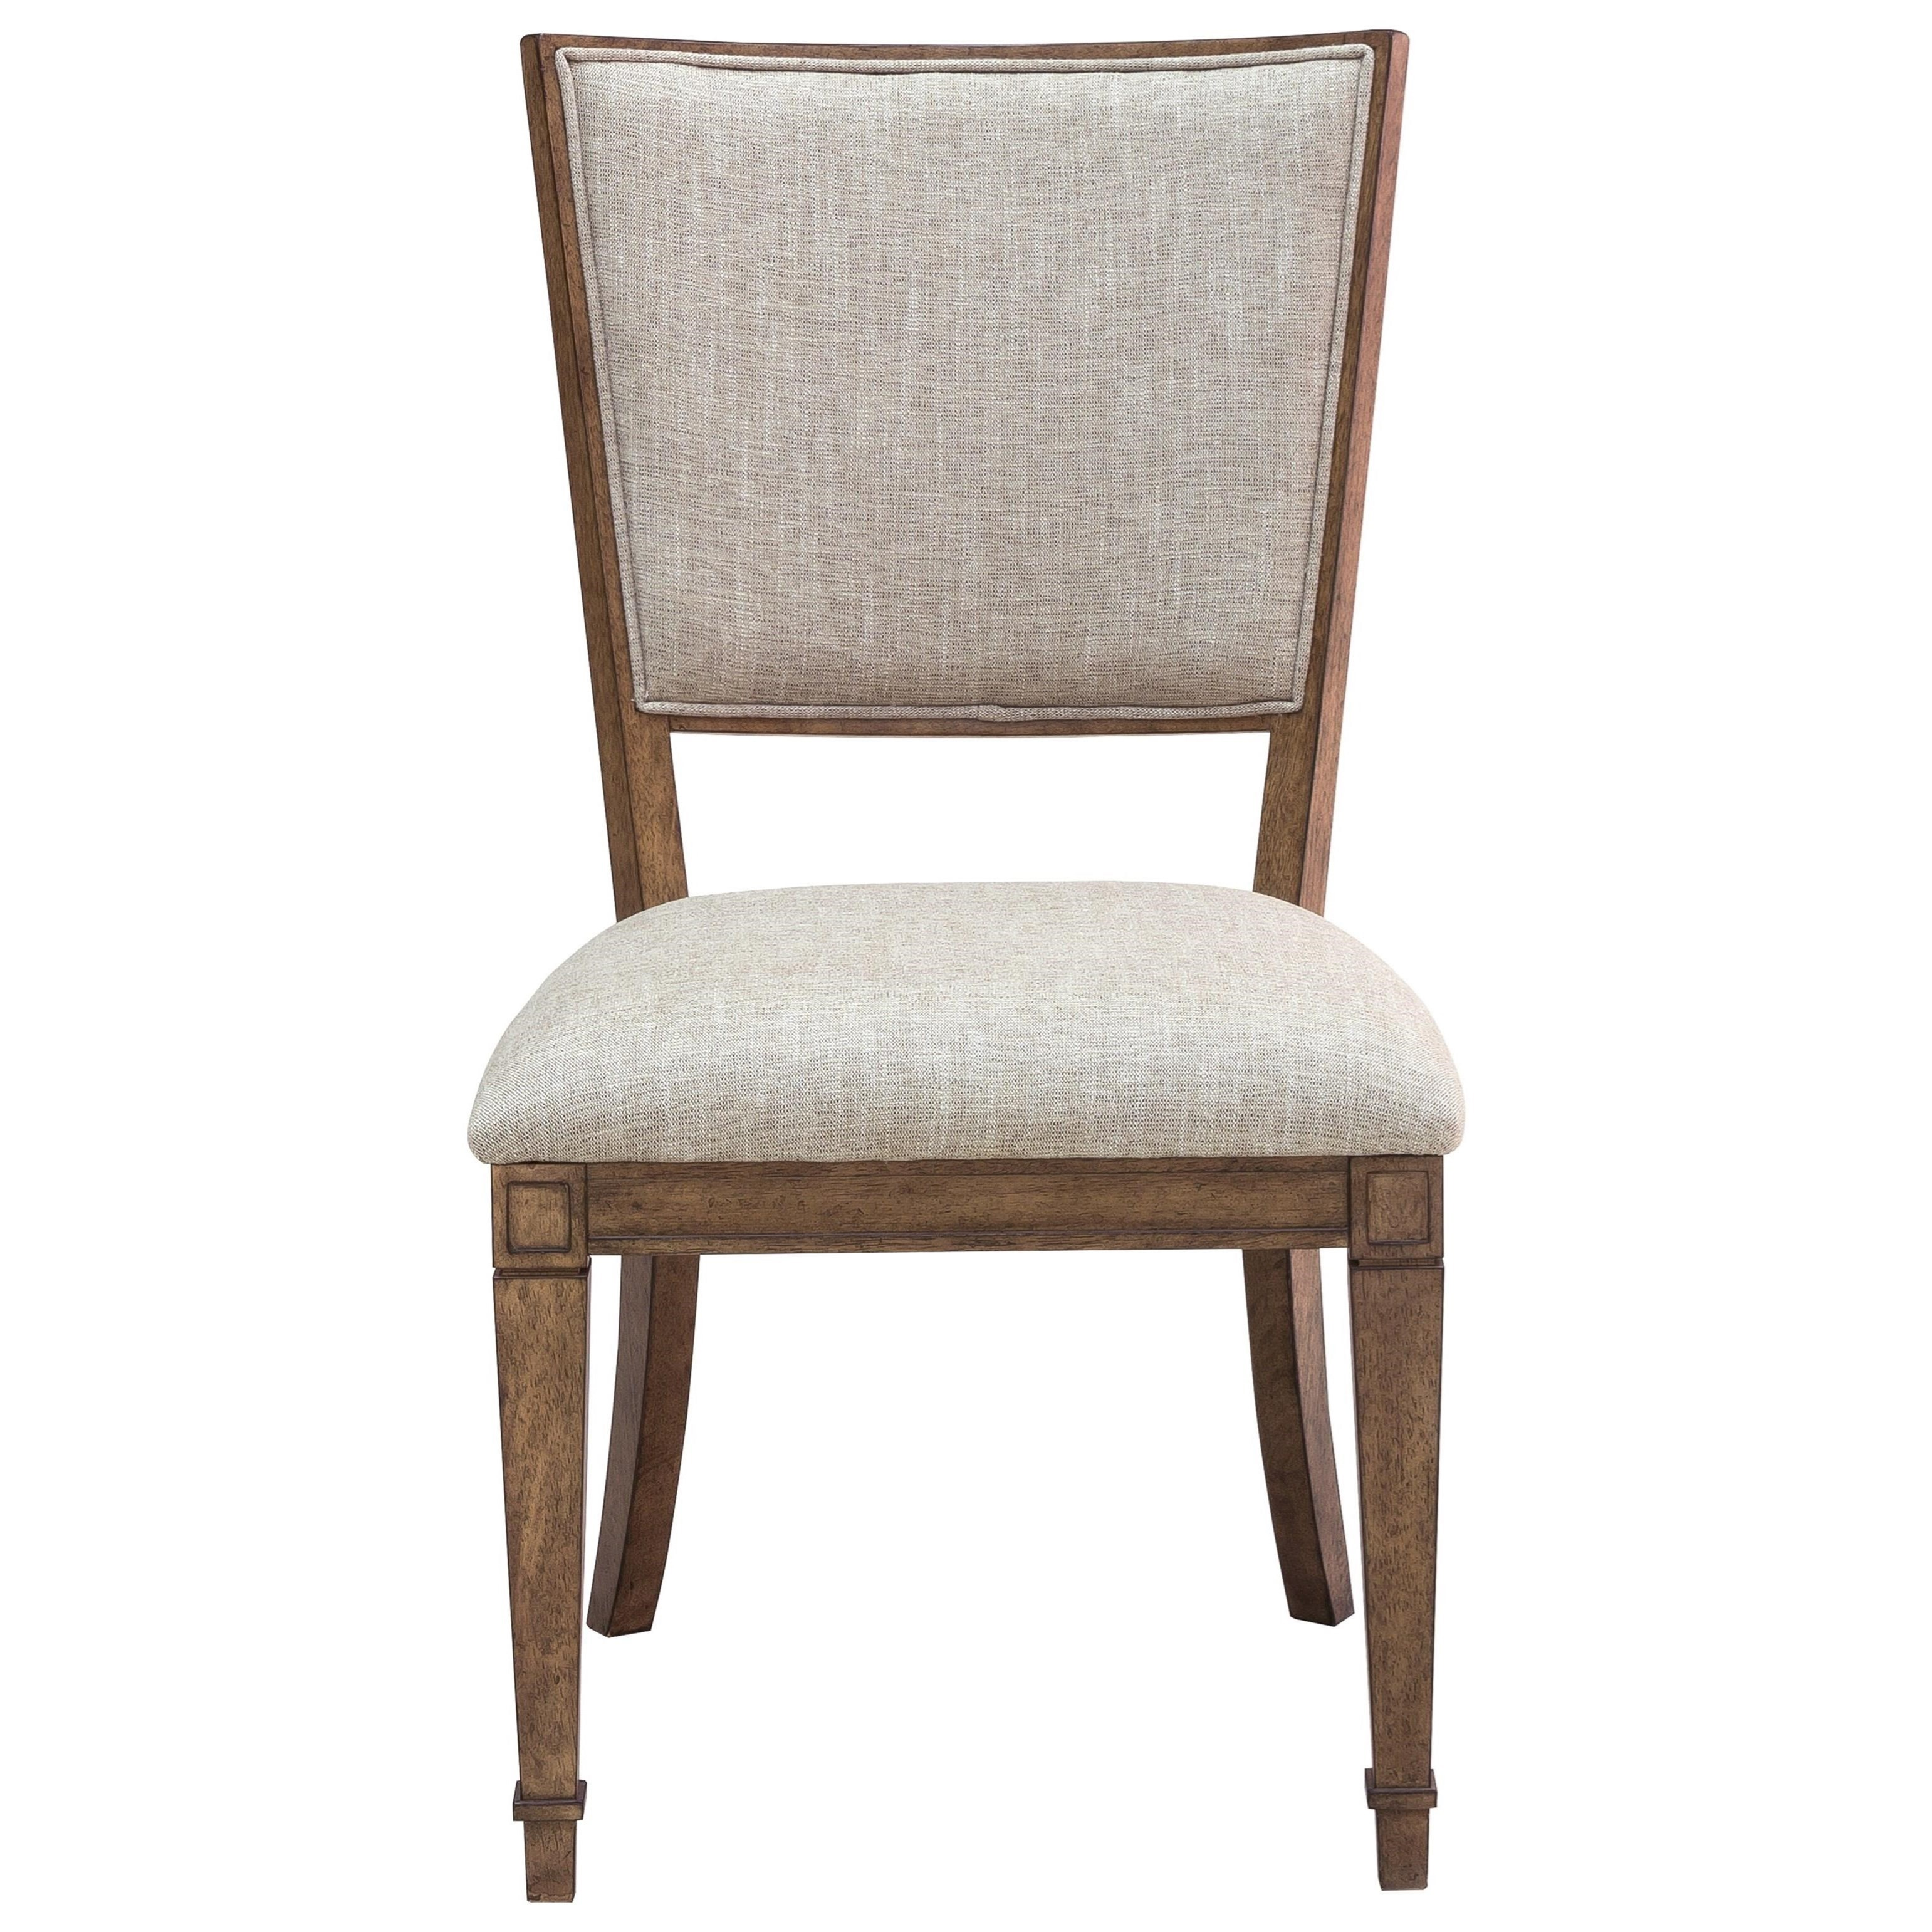 Anthology Upholstered Side Chair by Pulaski Furniture at Alison Craig Home Furnishings